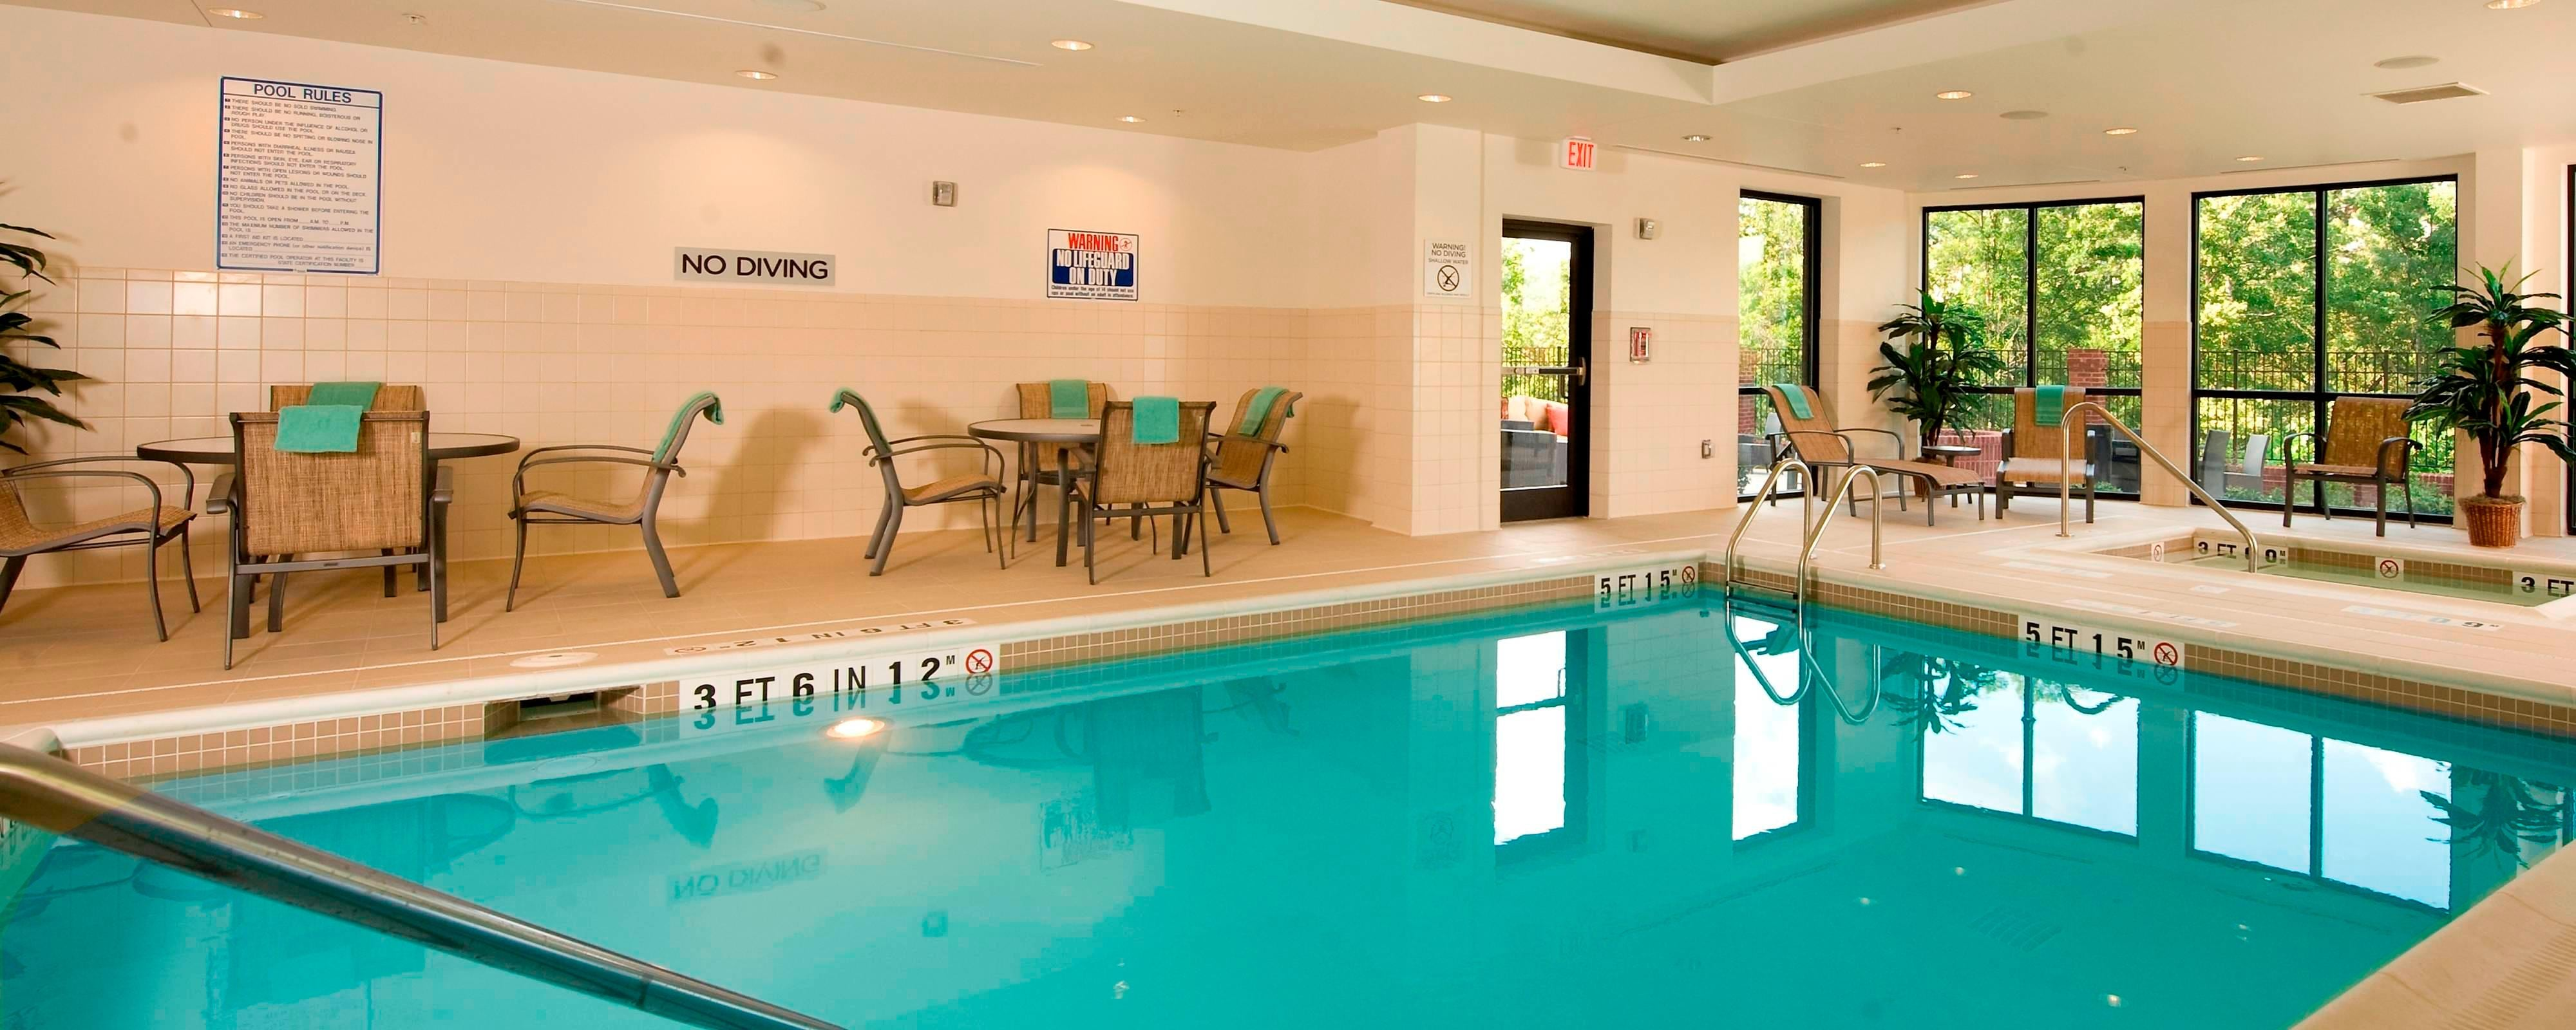 Buford Hotel Pool and Spa